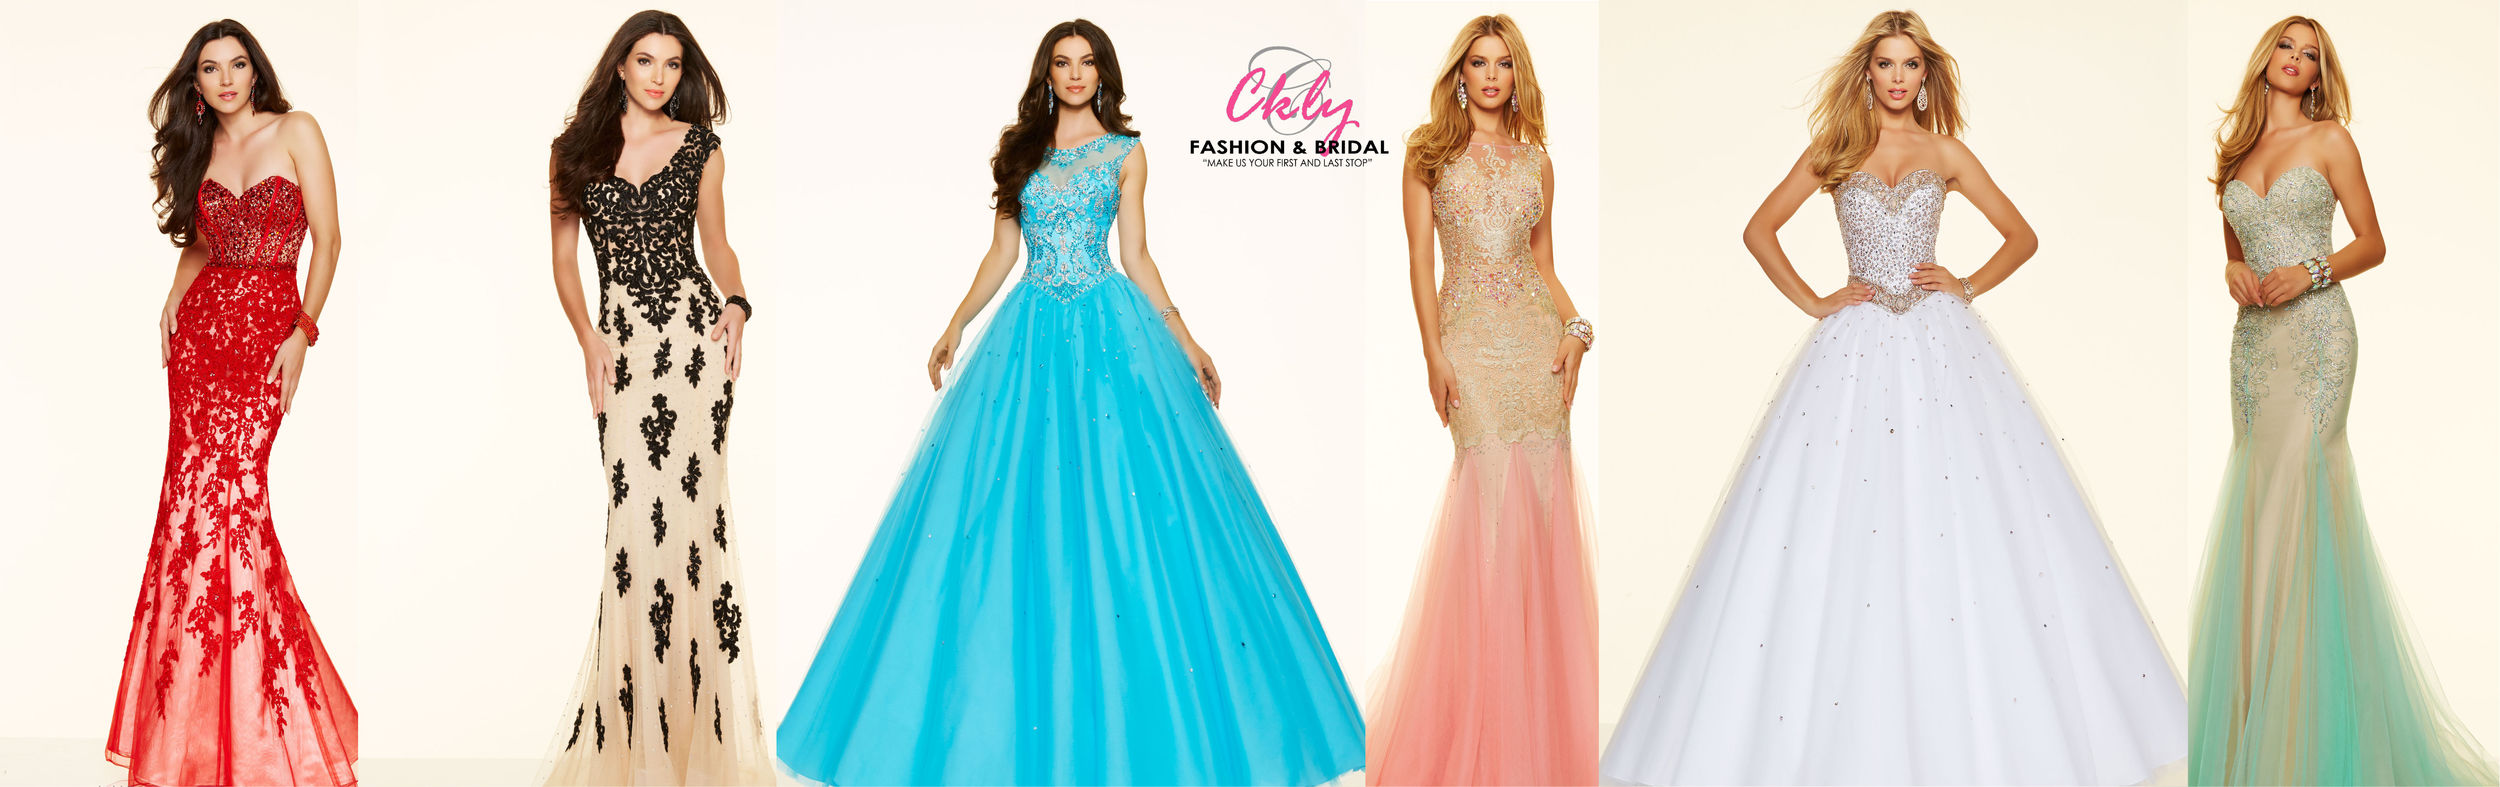 Prom & Graduation - Shop for Prom and Graduation Dresses at CKLY ...